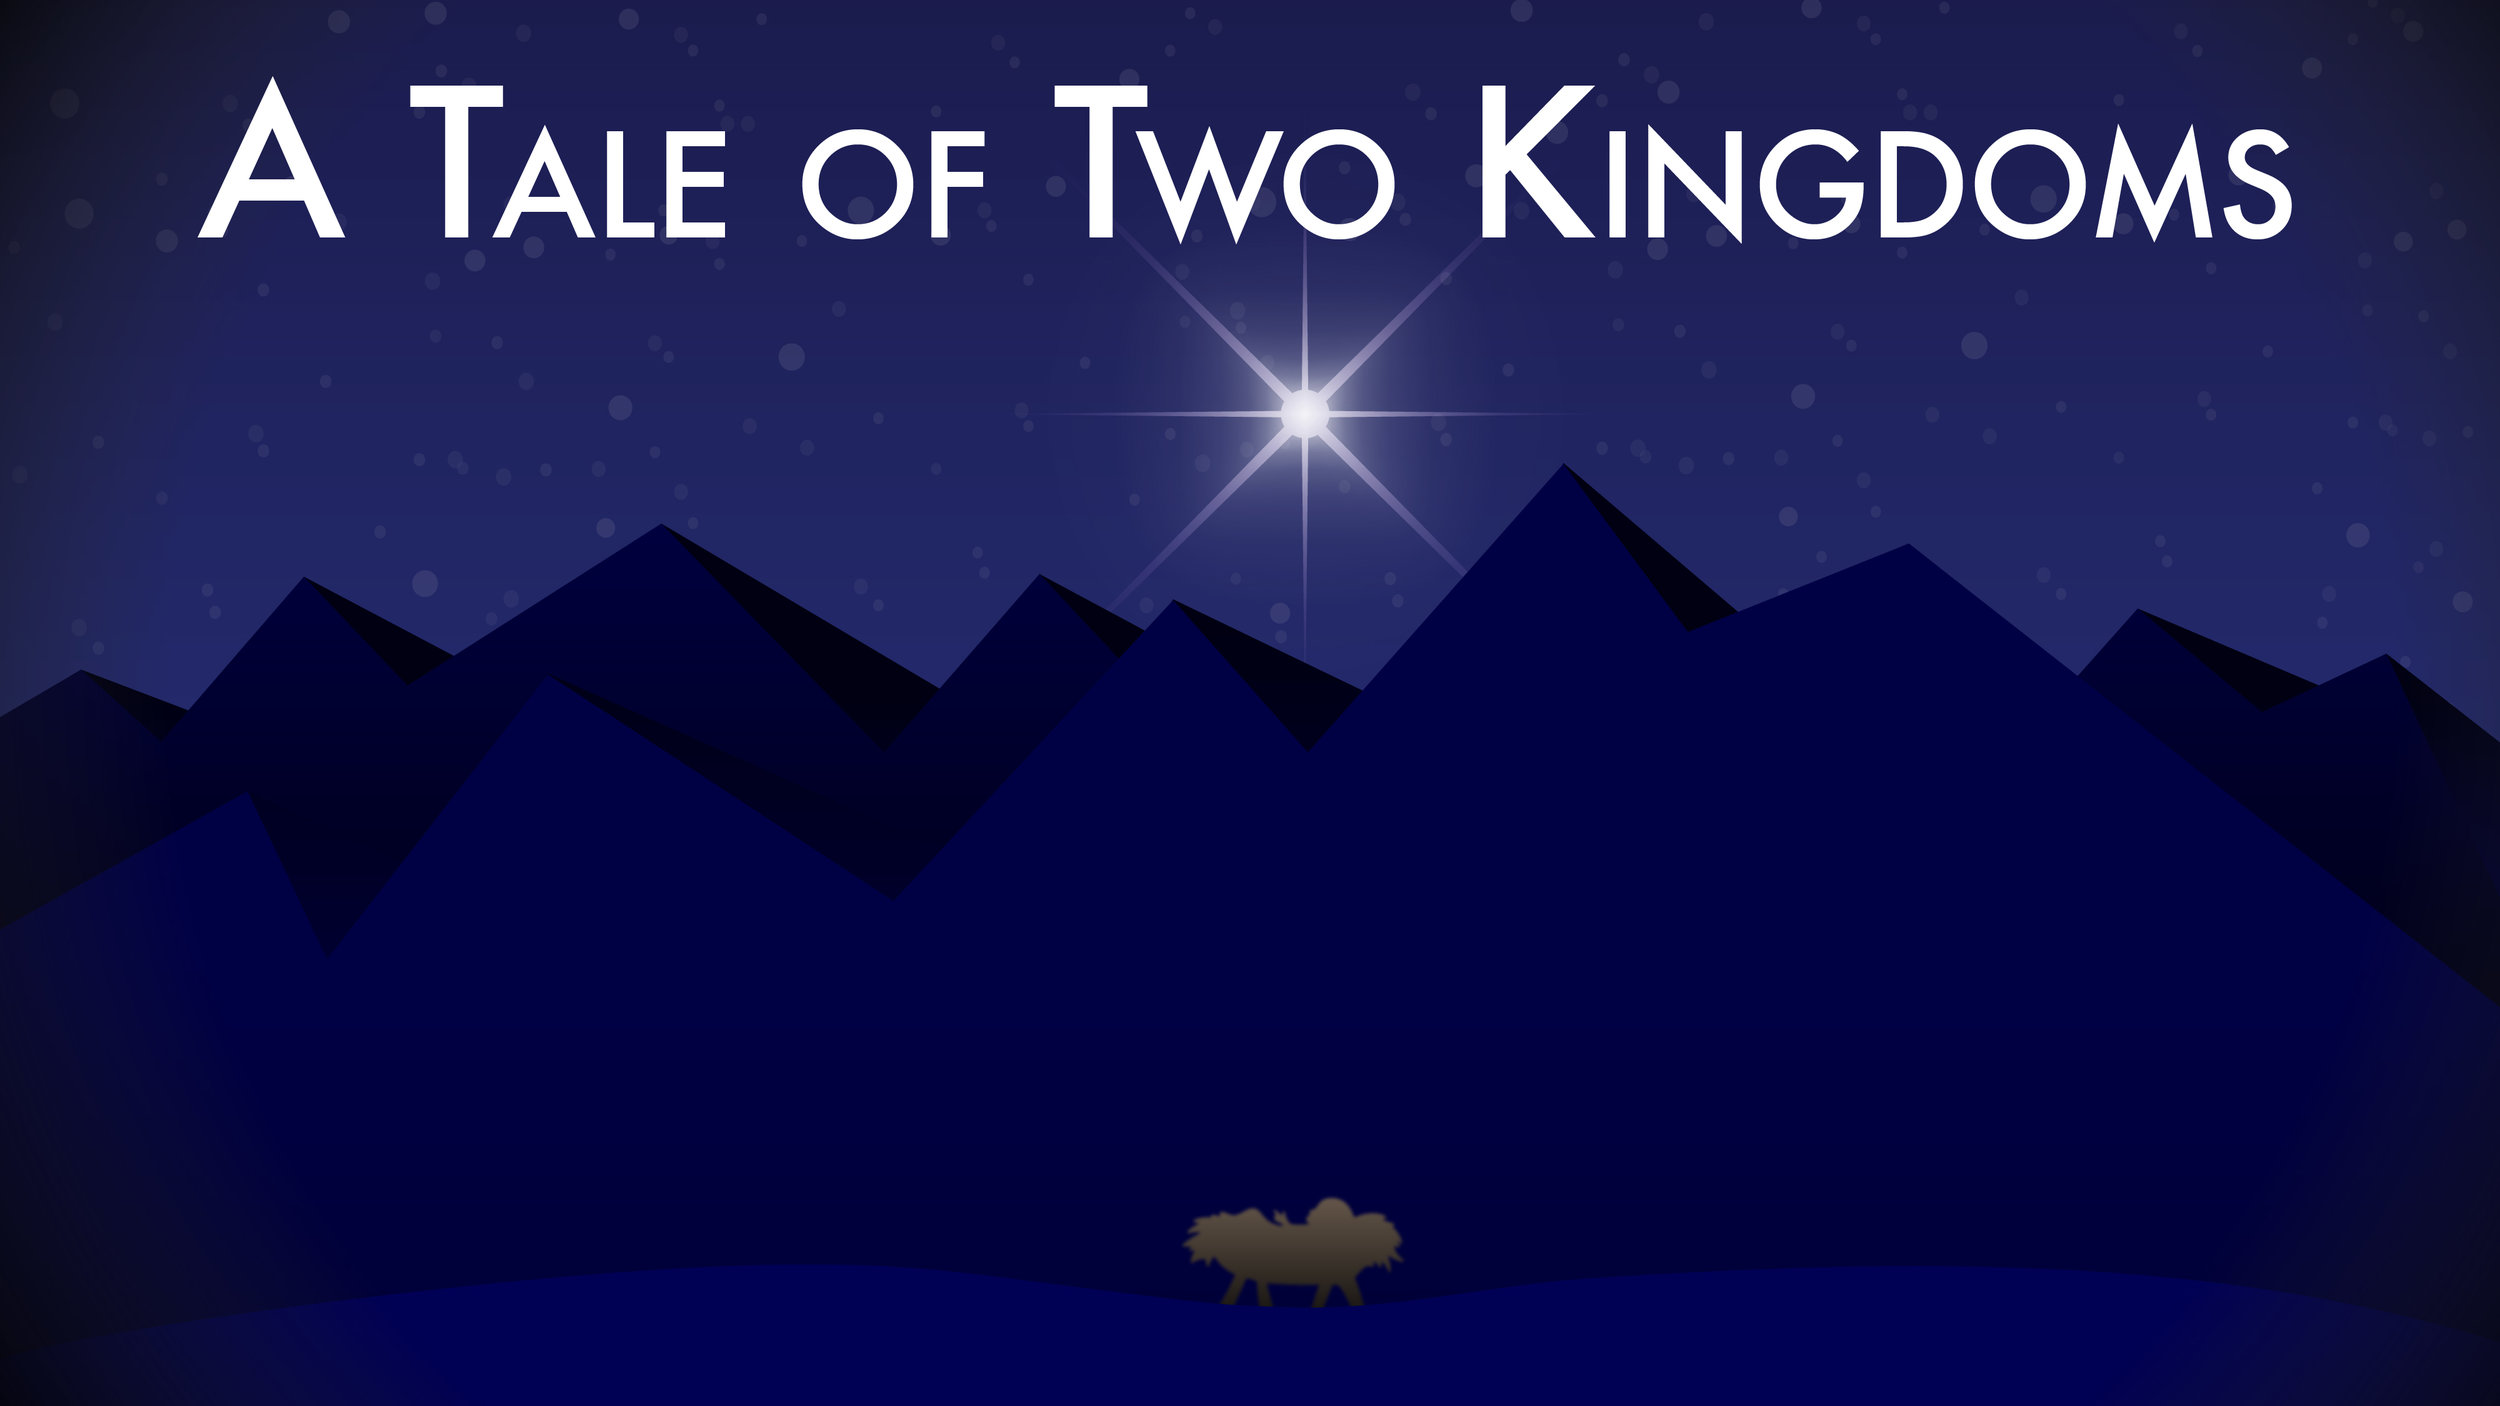 A Tale of Two Kingdoms (2014)